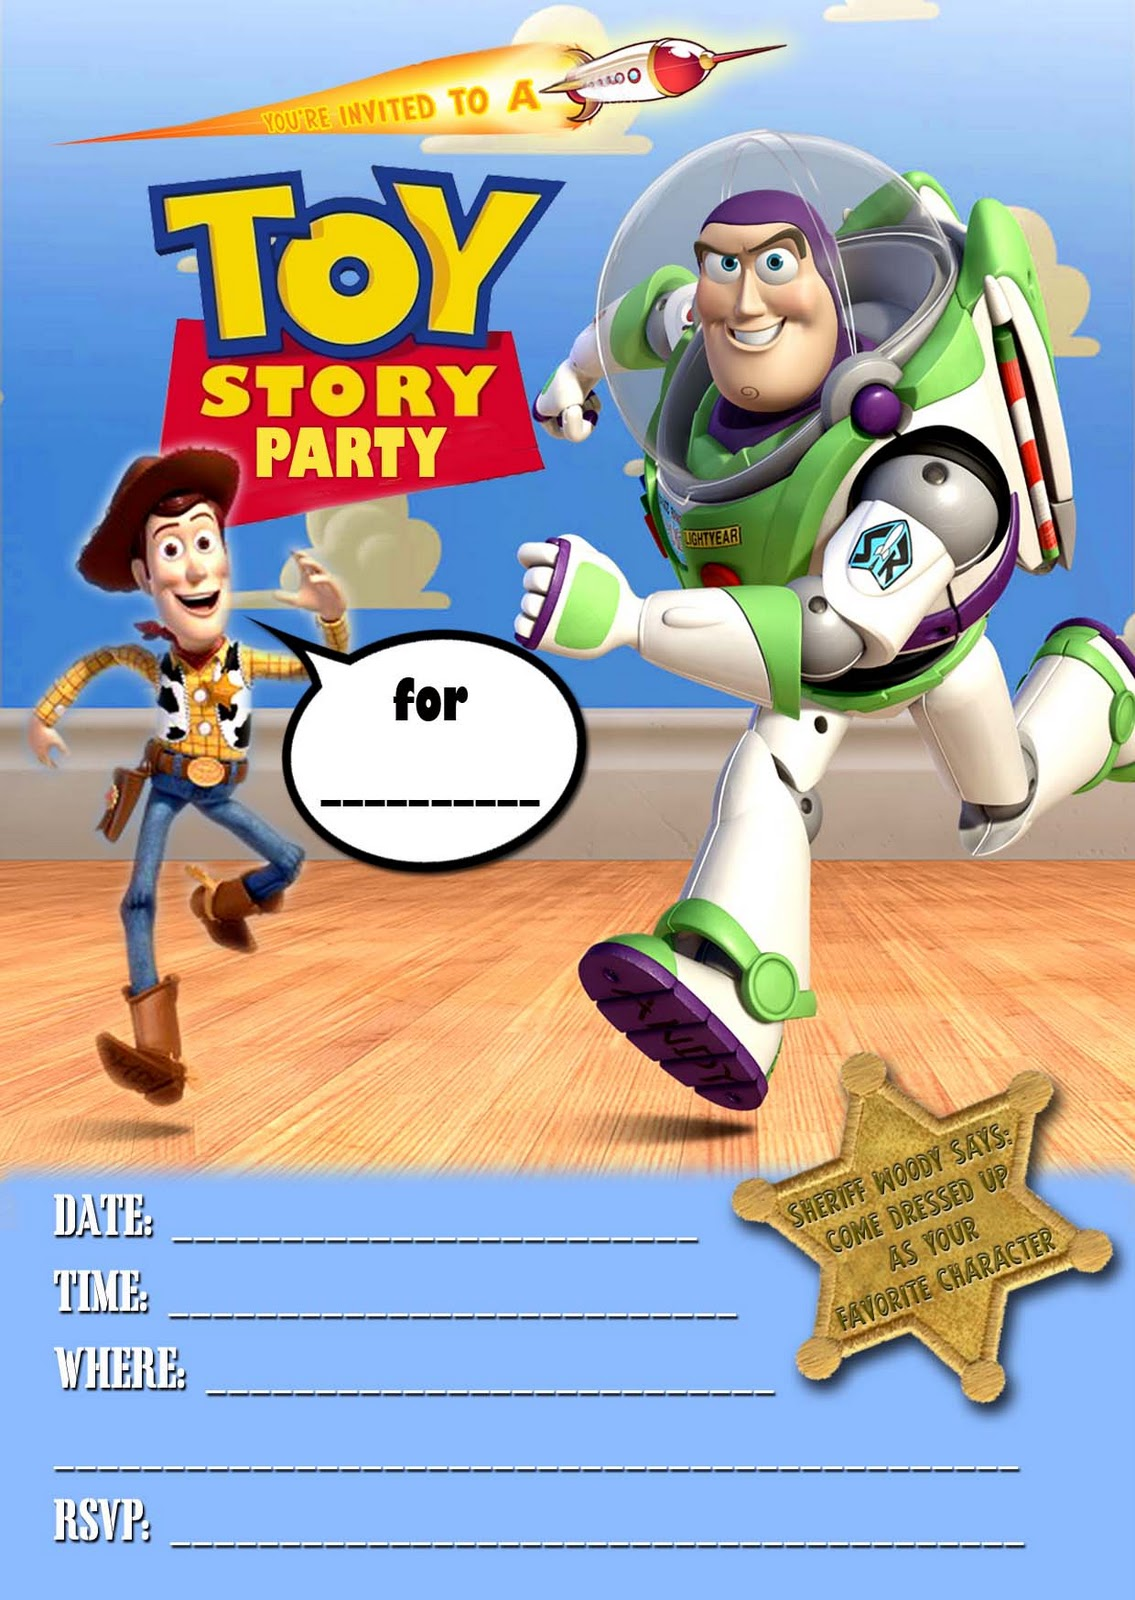 free kids party invitations toy story party invitation, Party invitations